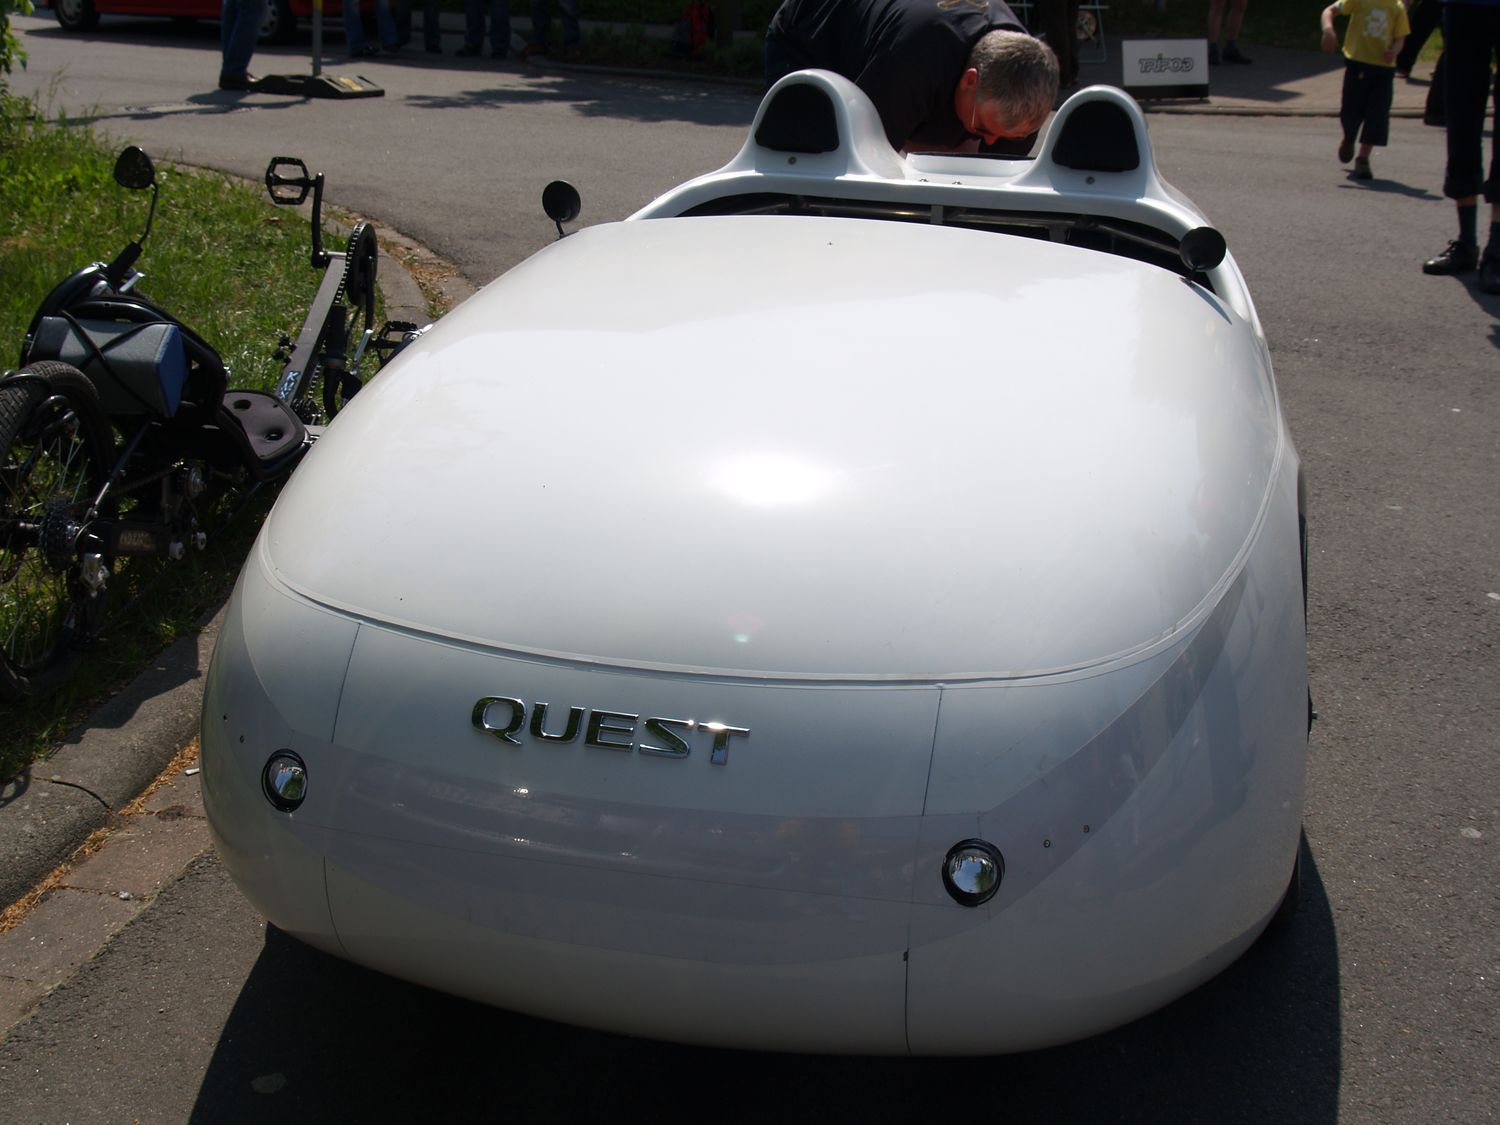 Duo Quest velomobile